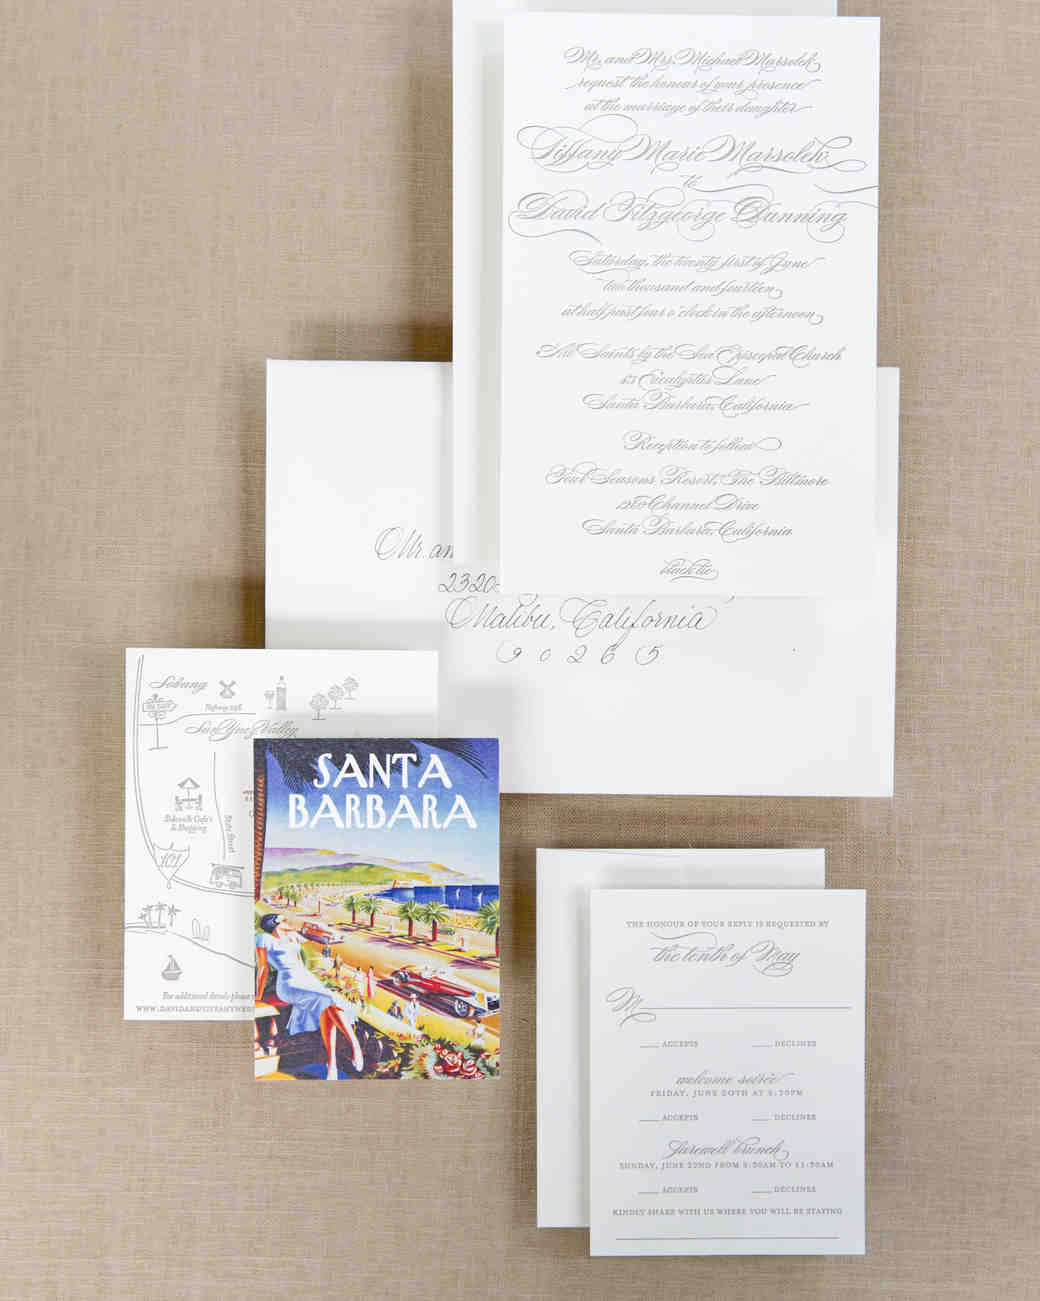 tiffany-david-wedding-invite-6-s112676-1115.jpg